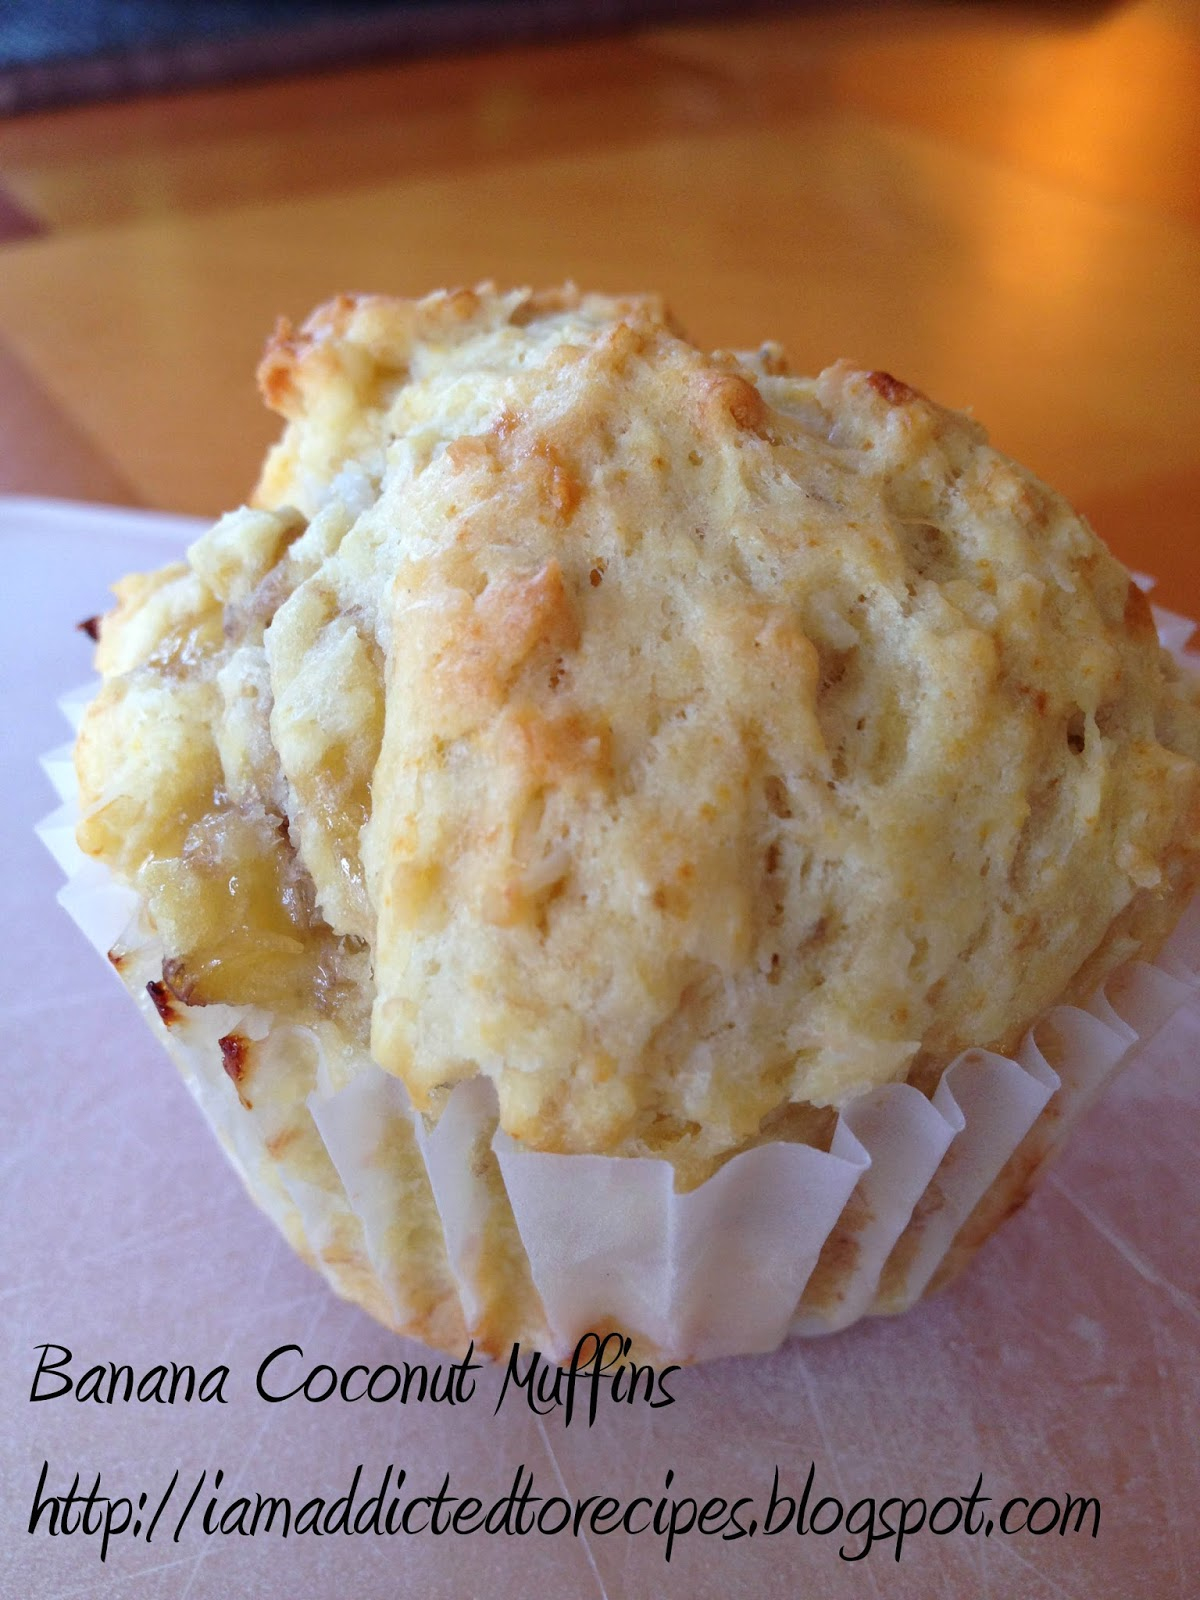 Banana Coconut Muffins | Addicted to Recipes